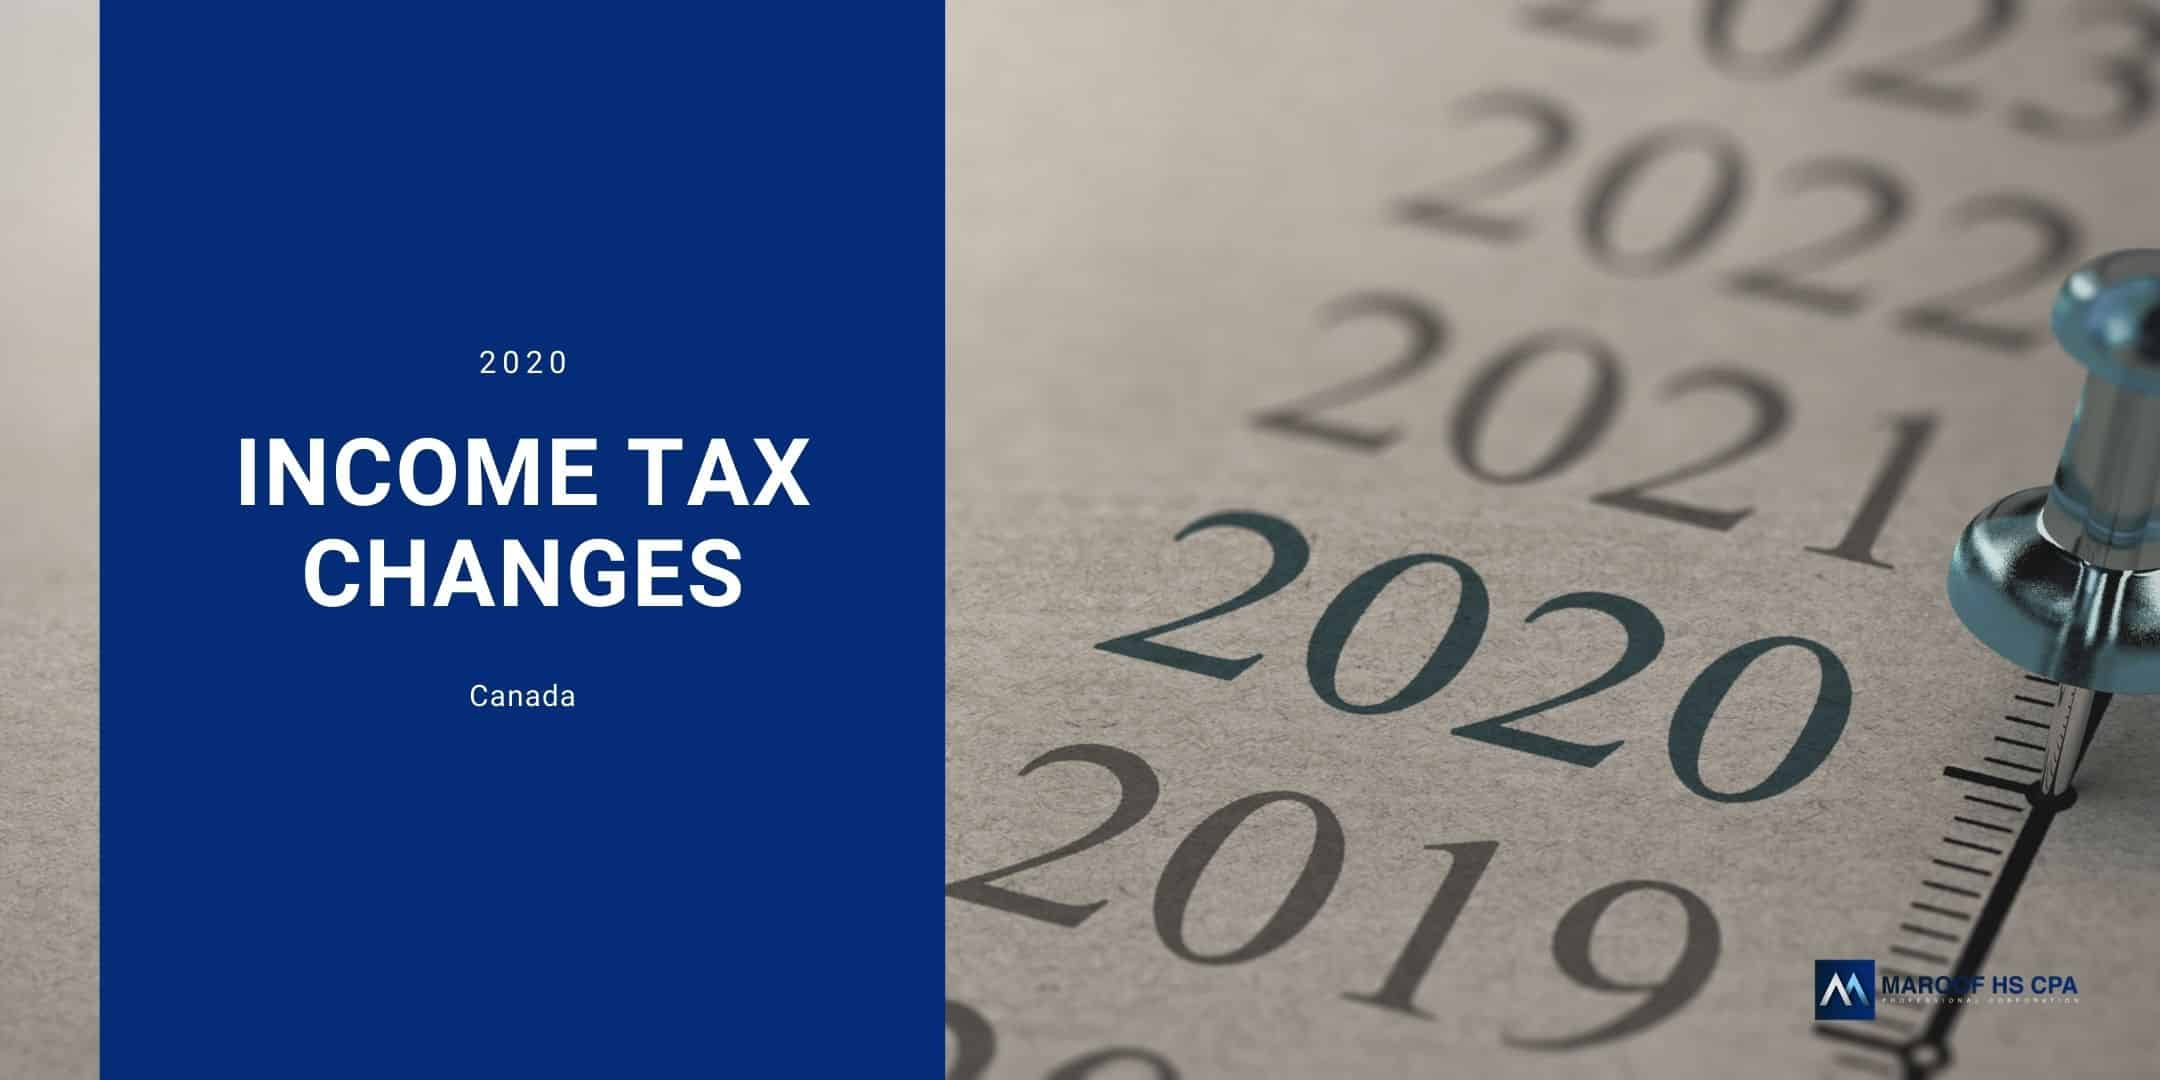 income tax changes in Canada in 2020